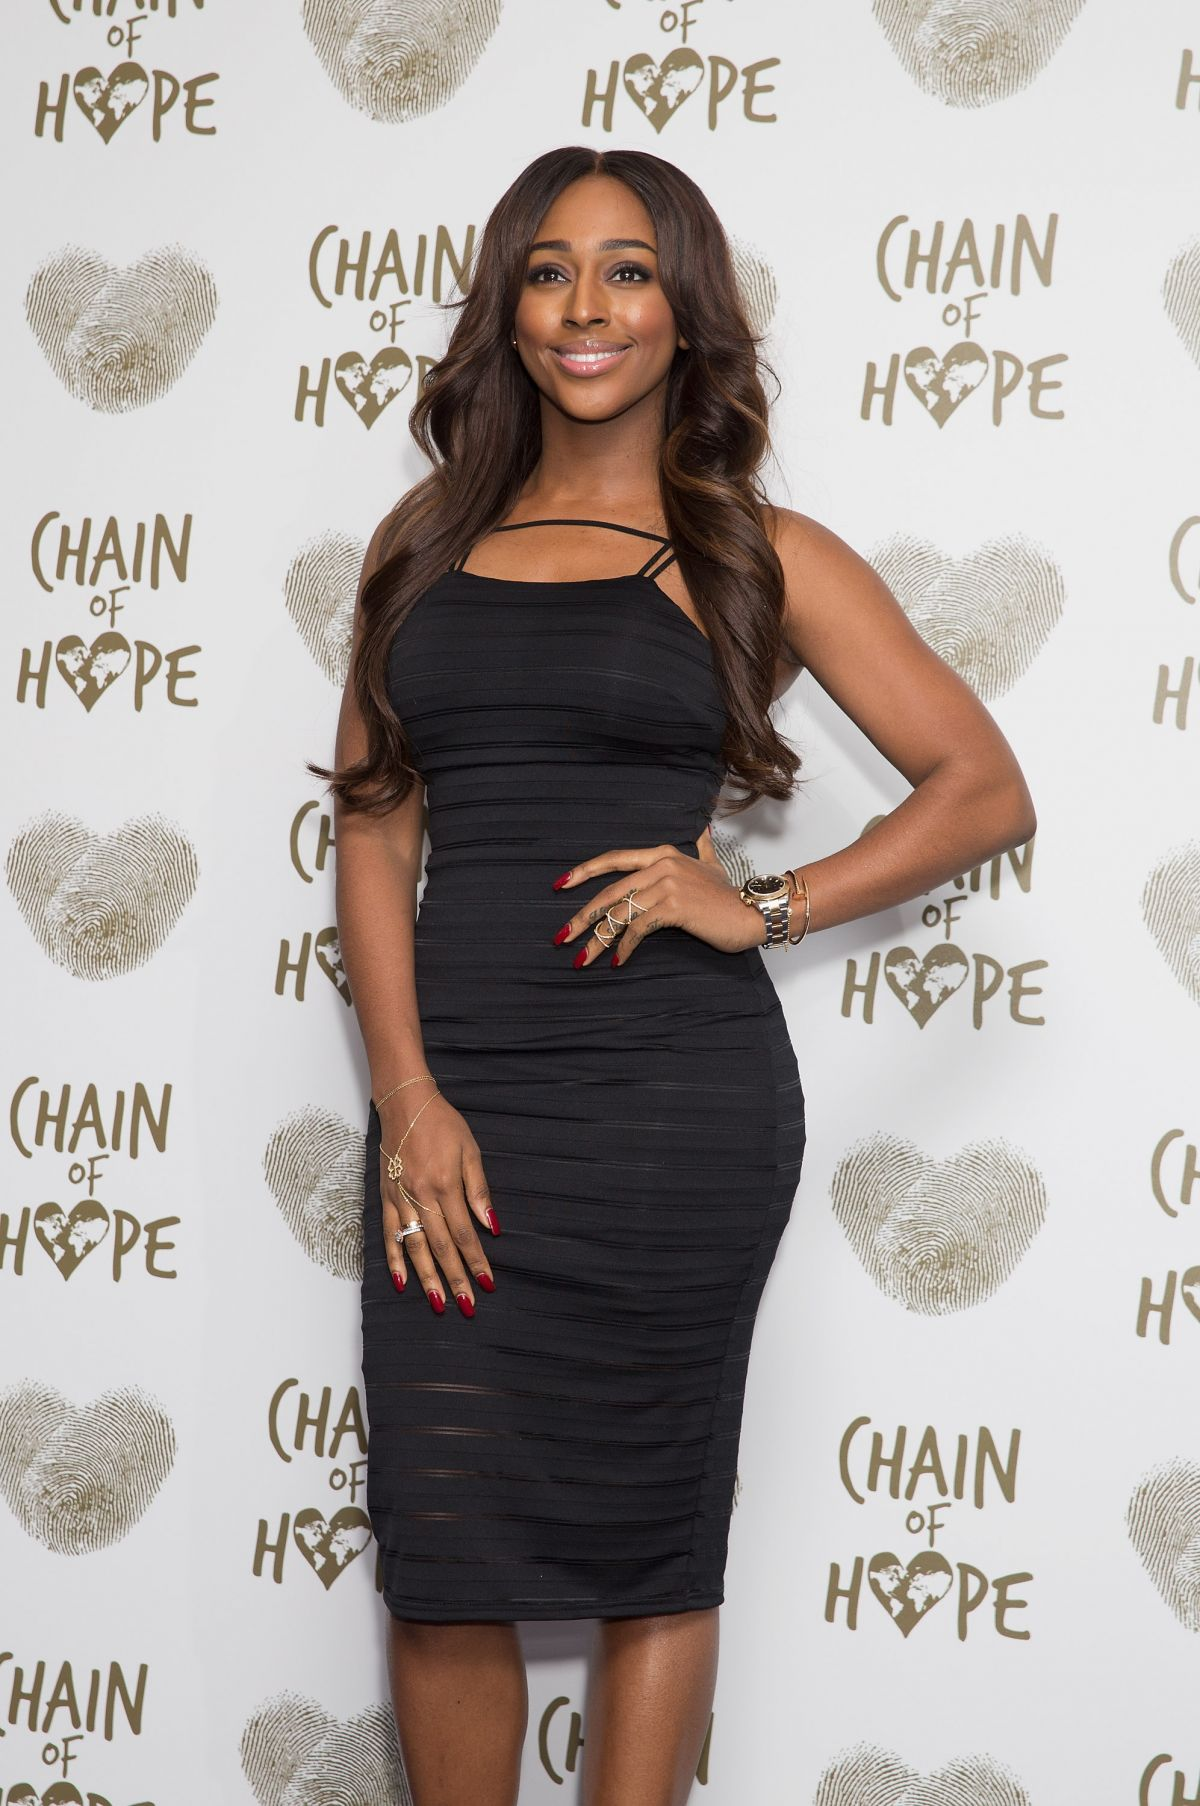 ALEXANDRA BURKE at Chain of Hope Gala Ball in London